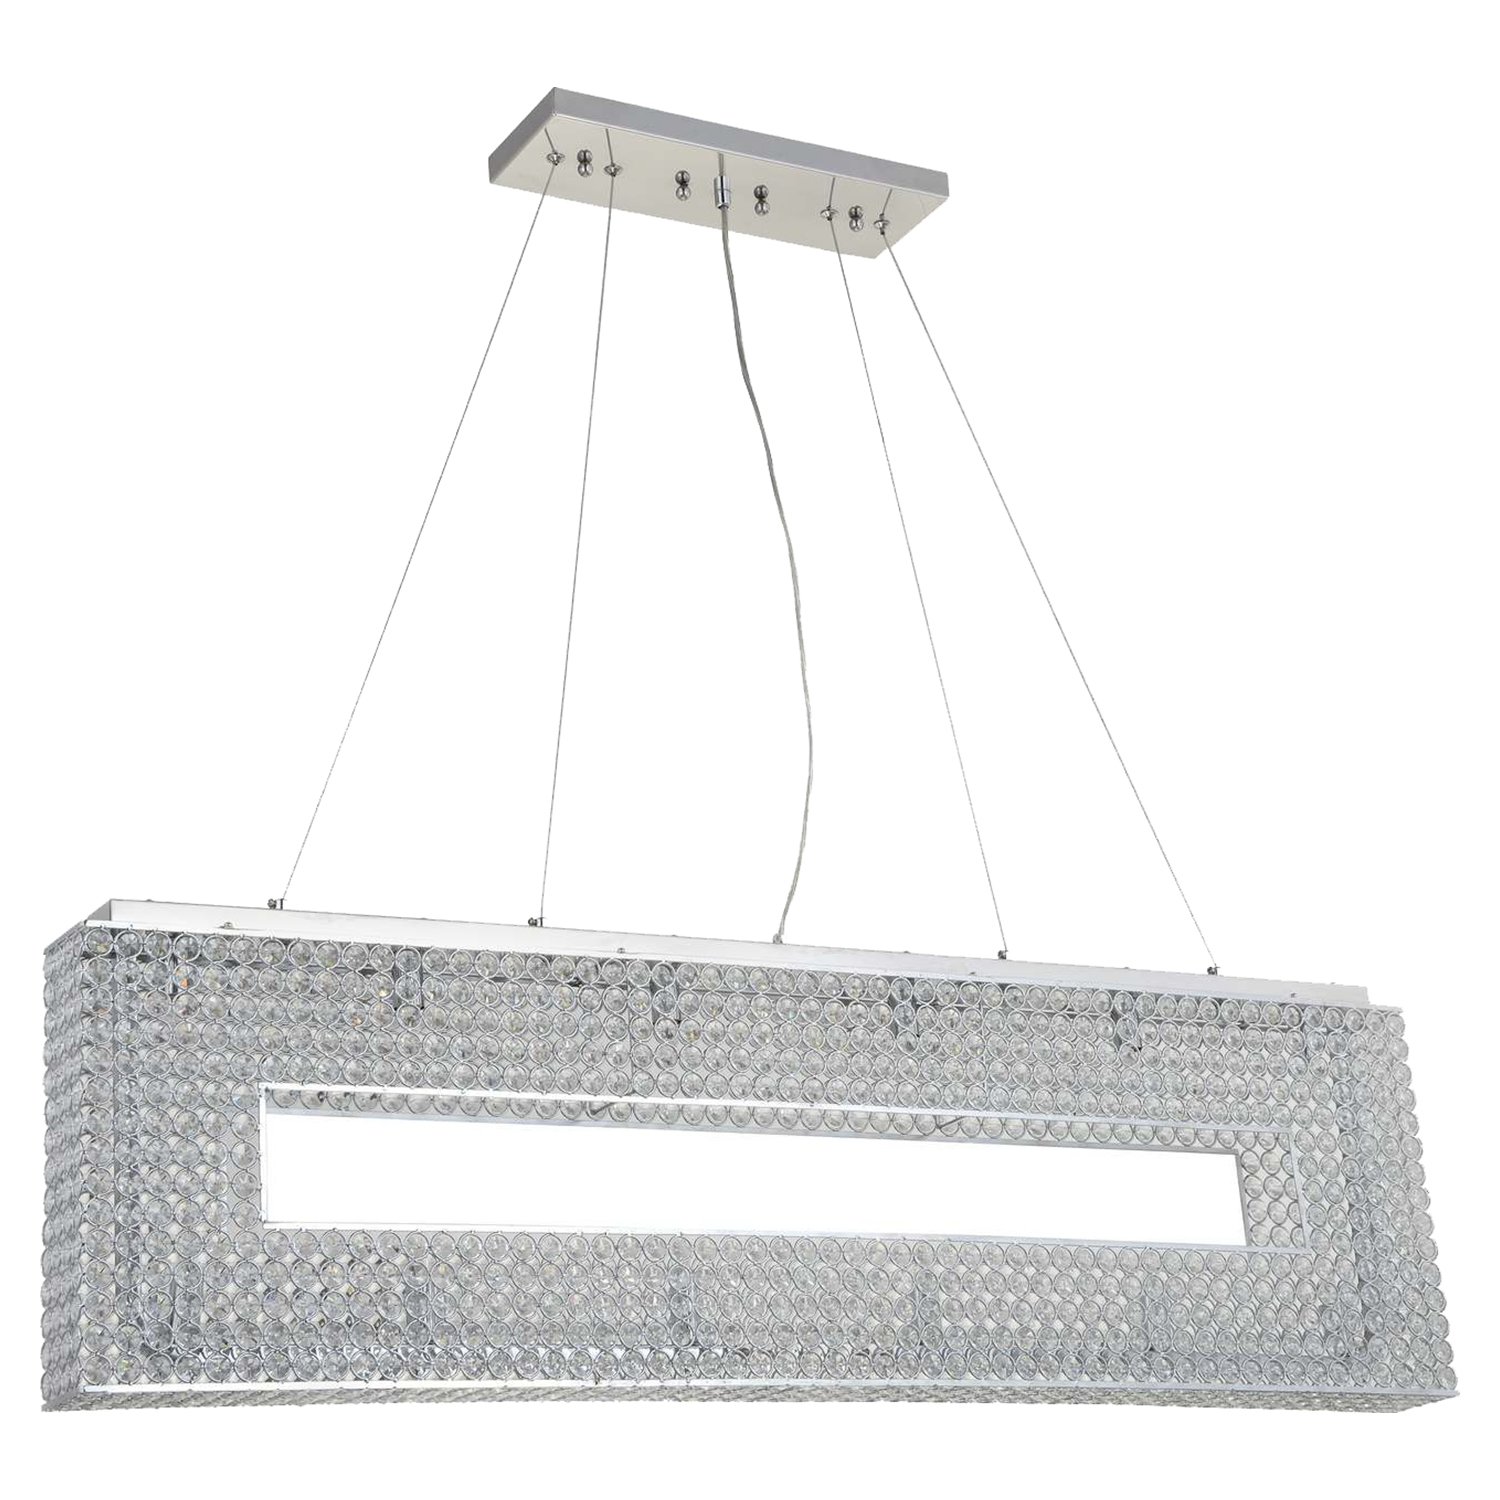 Illusion 12-Light Chandelier - Chrome, Crystals - BROM-B1806